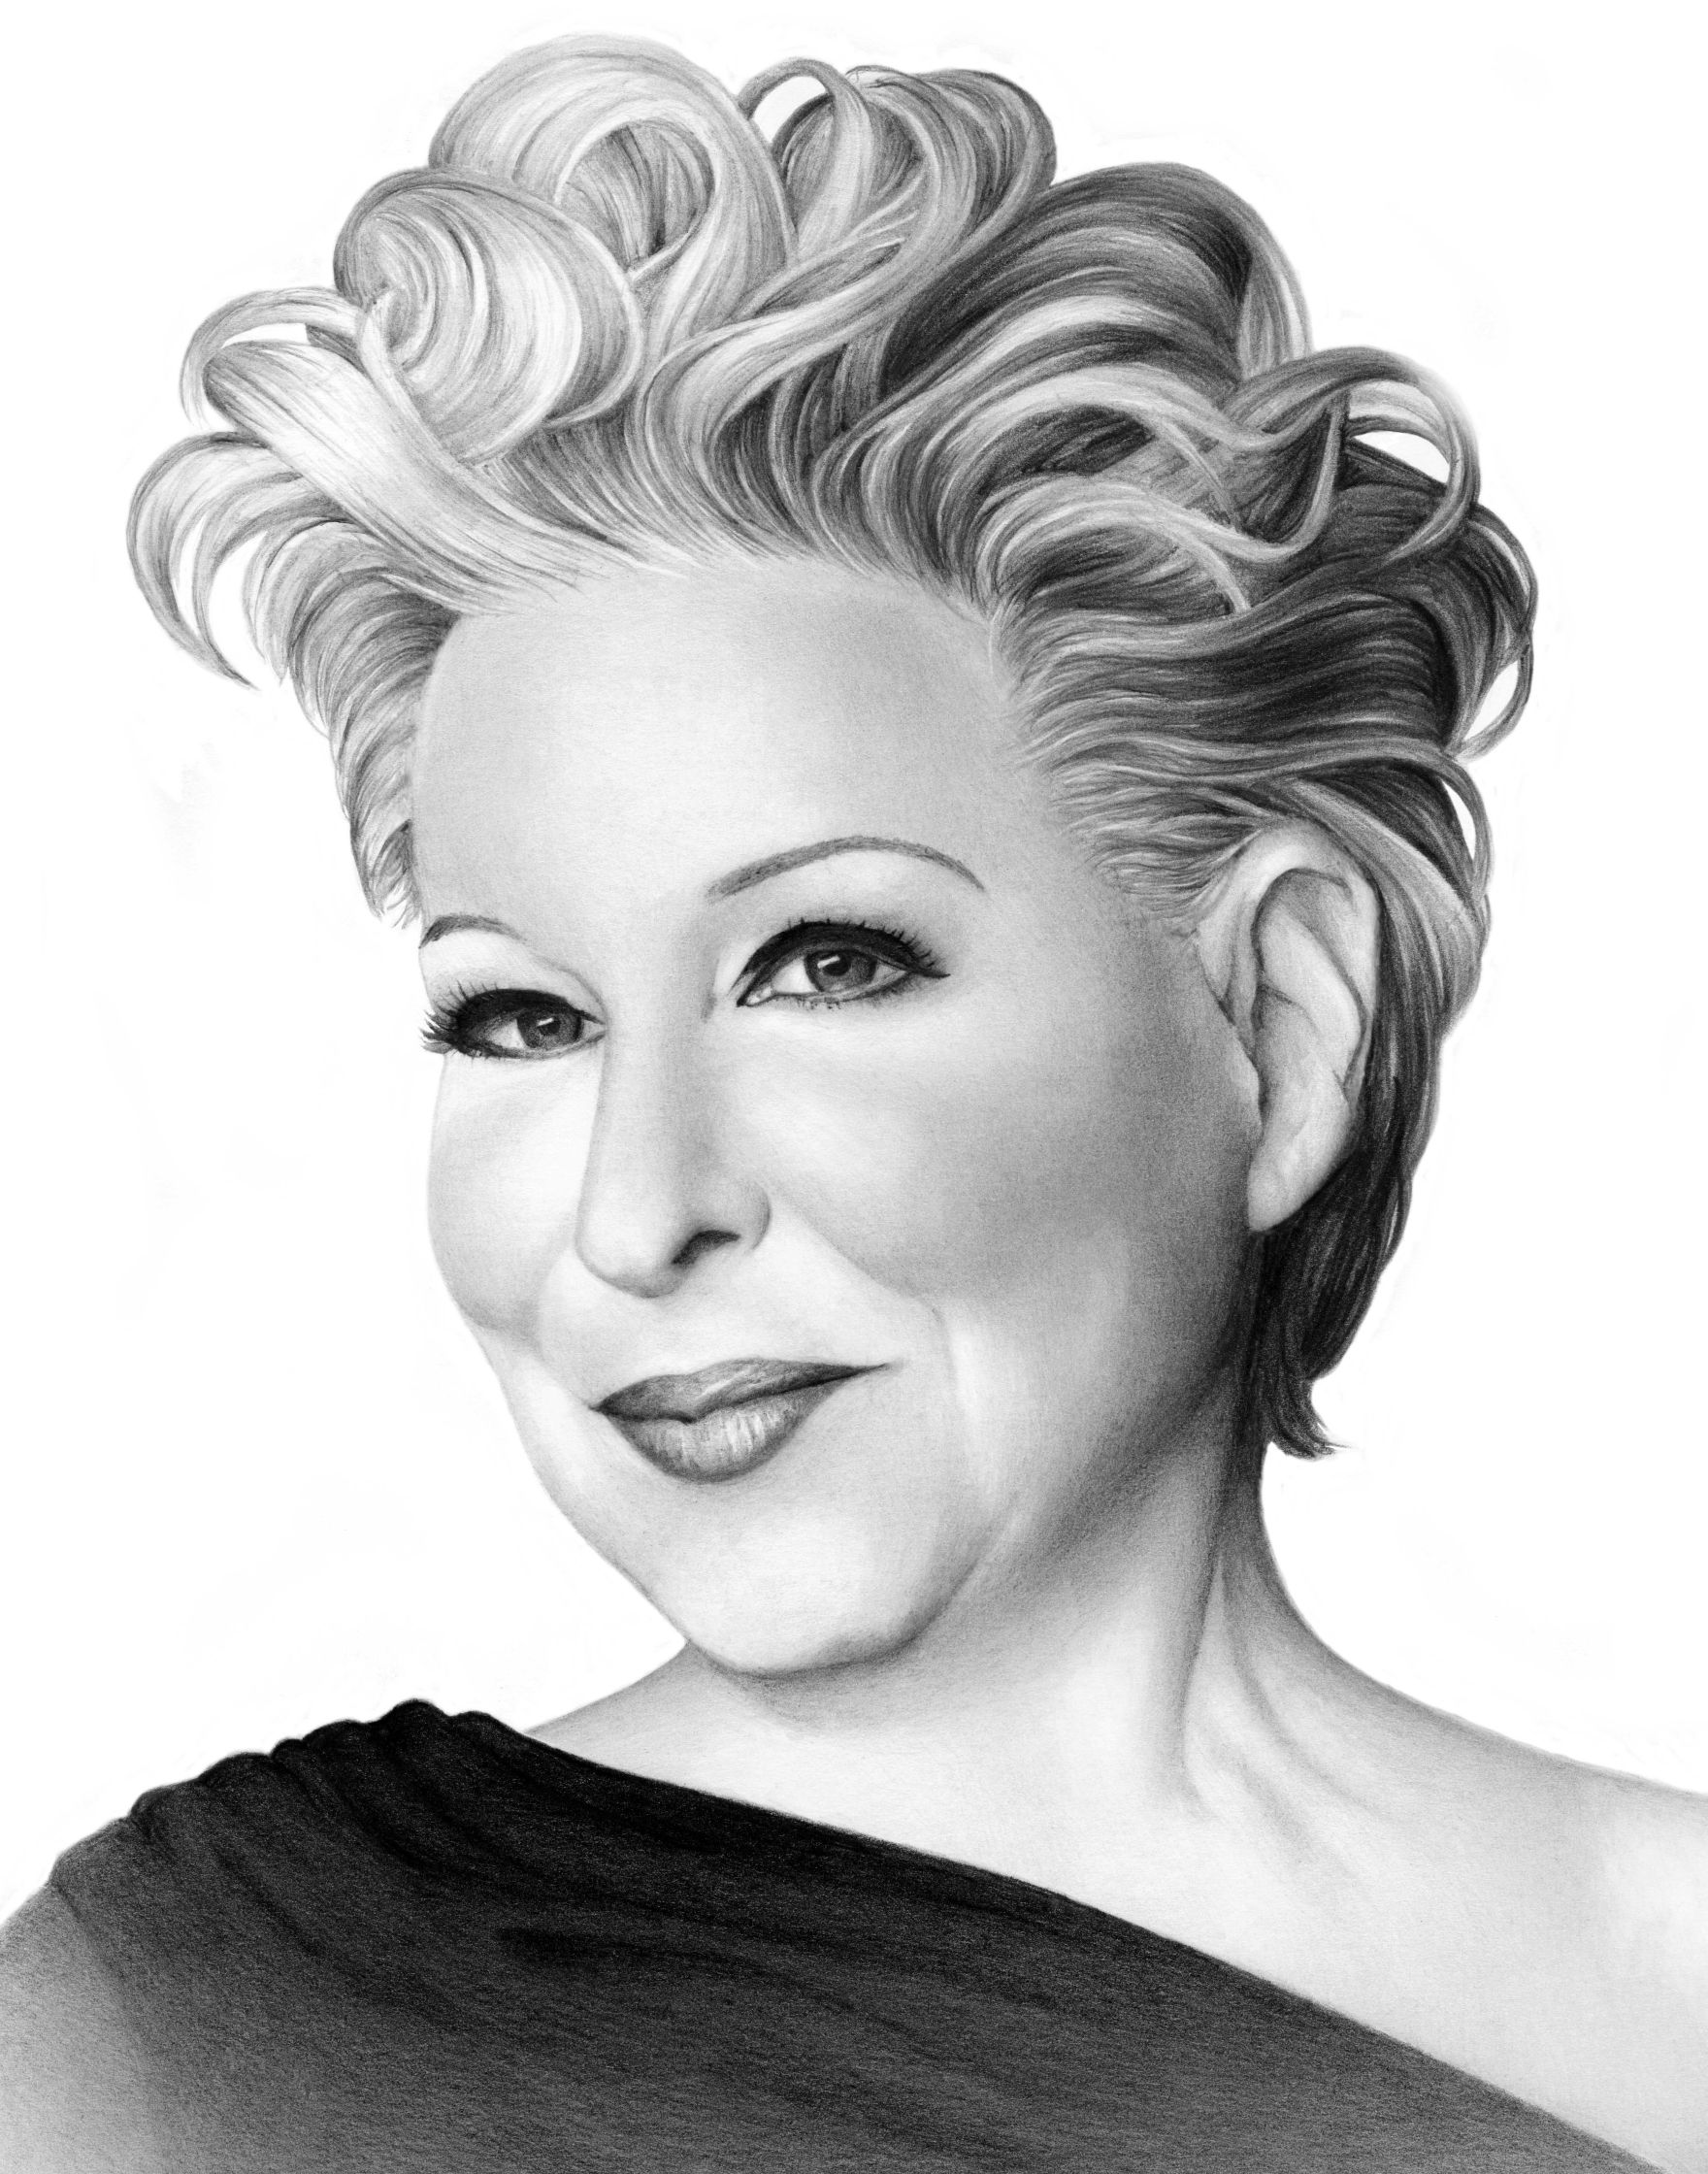 Bette midler cath riley debut art